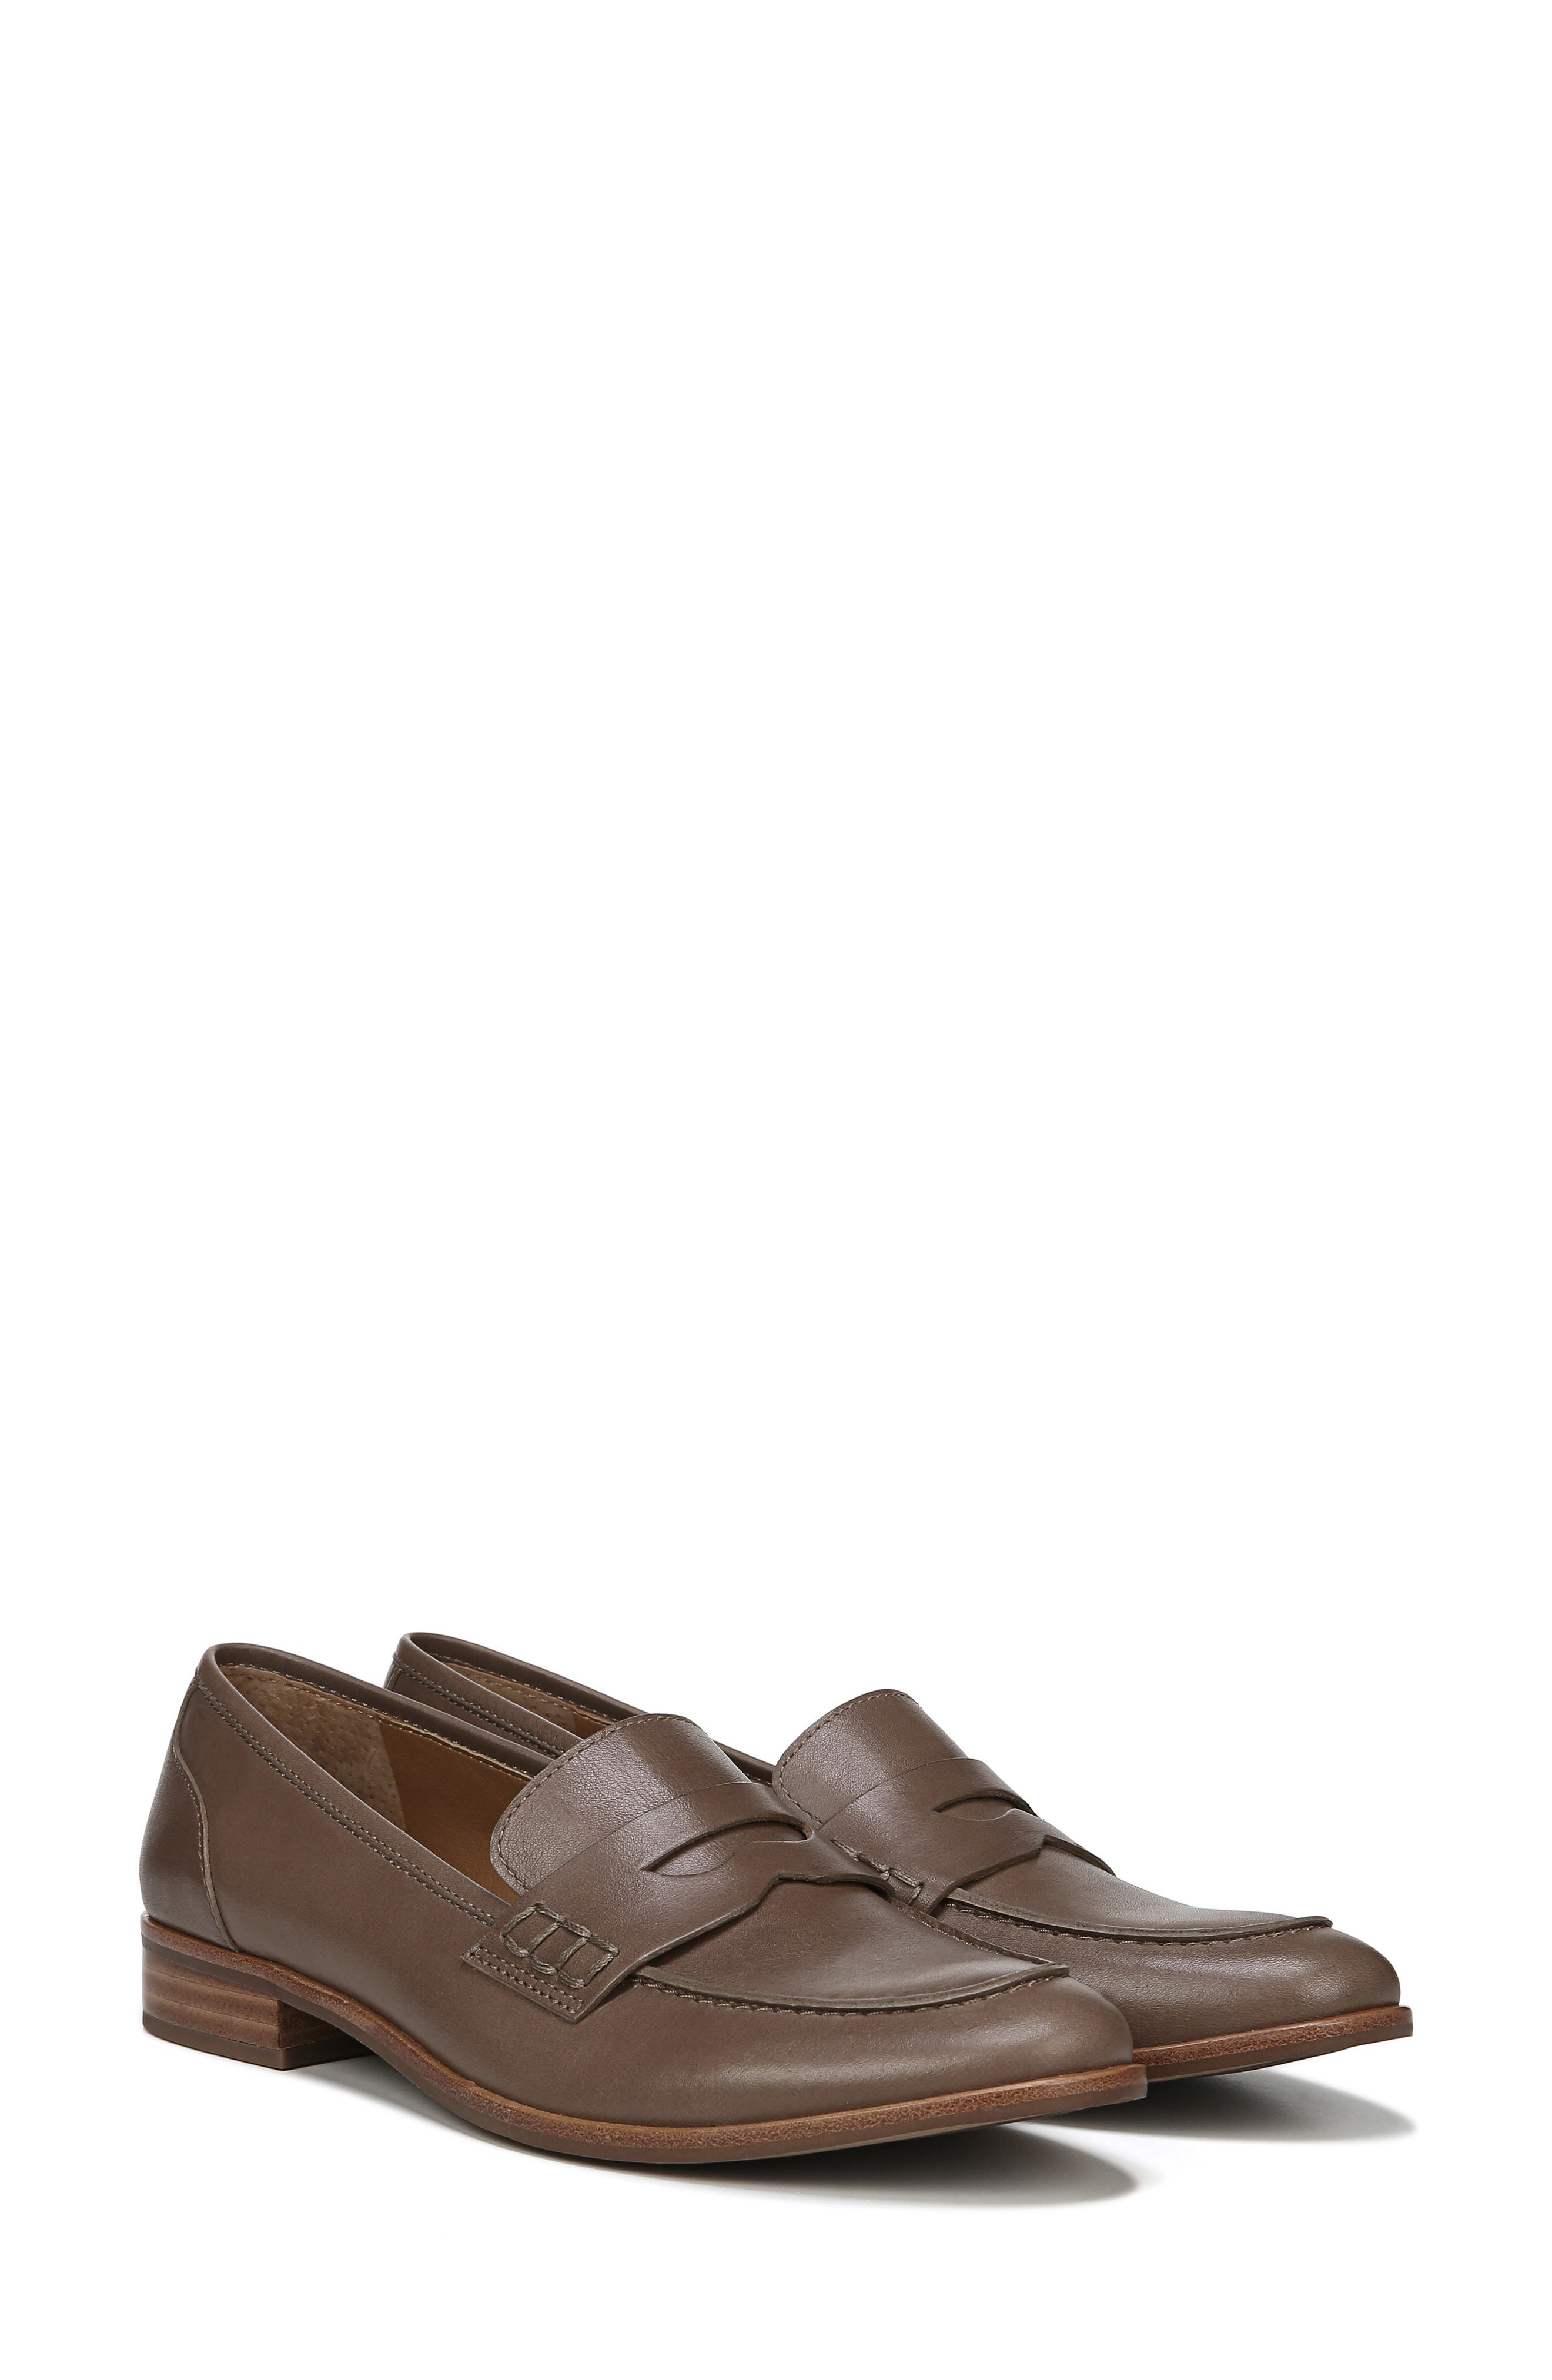 SARTO BY FRANCO SARTO,                             'Jolette' Penny Loafer,                             Alternate thumbnail 8, color,                             DARK PUTTY LEATHER